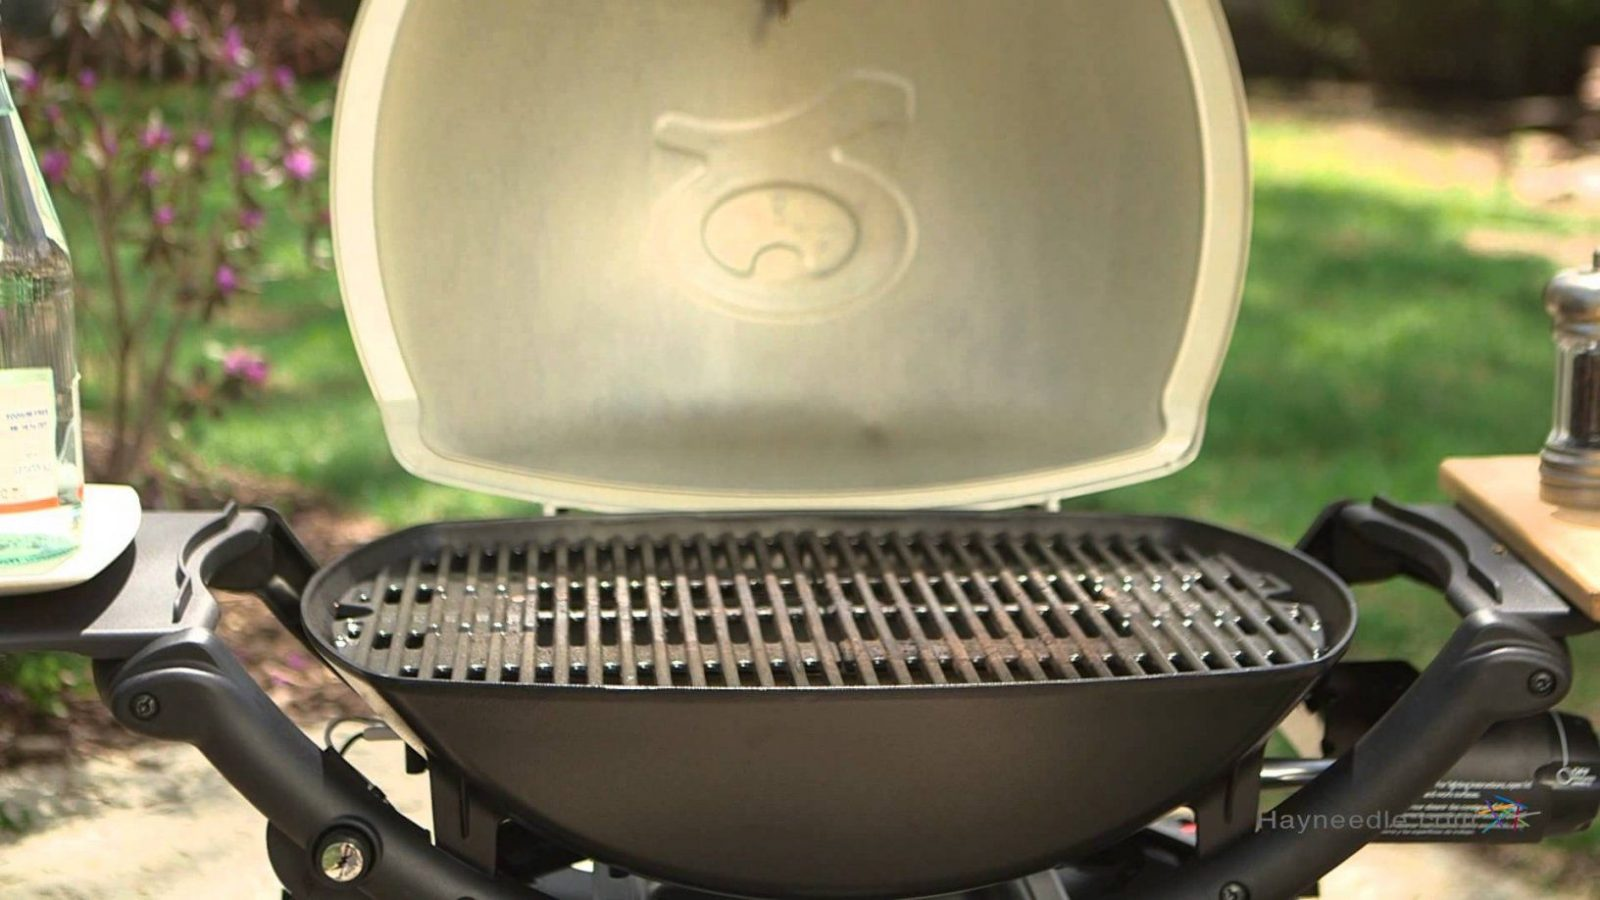 Weber Q 2200 Lp Gas Grill  Product Review Video  Youtube von Weber Gasgrill Q 2200 Station Photo